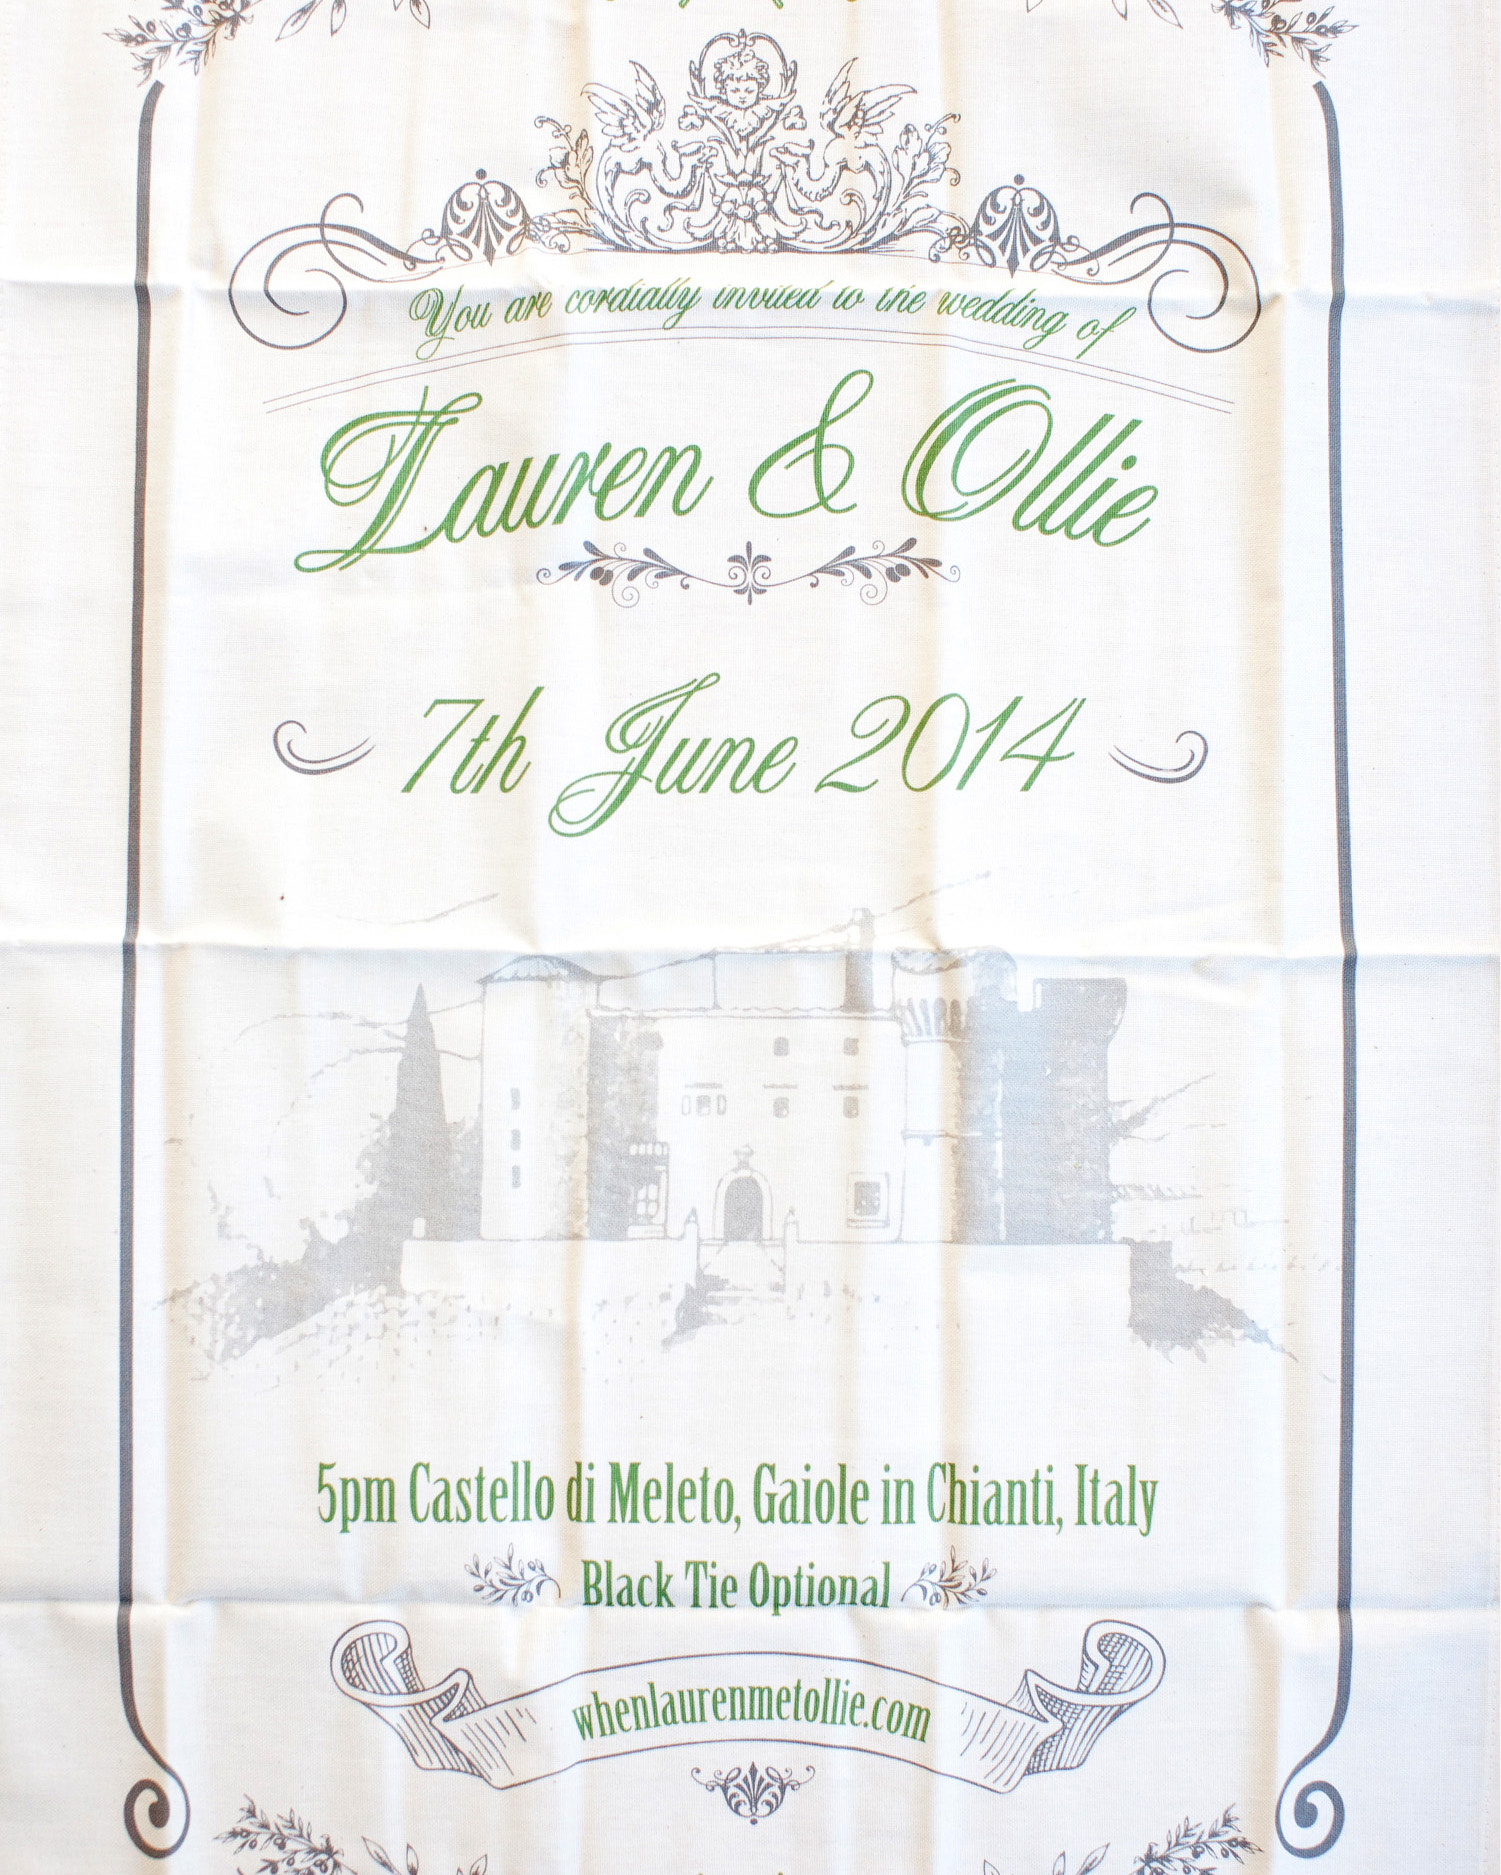 lauren-ollie-wedding-invitation-2-s111895-0515.jpg